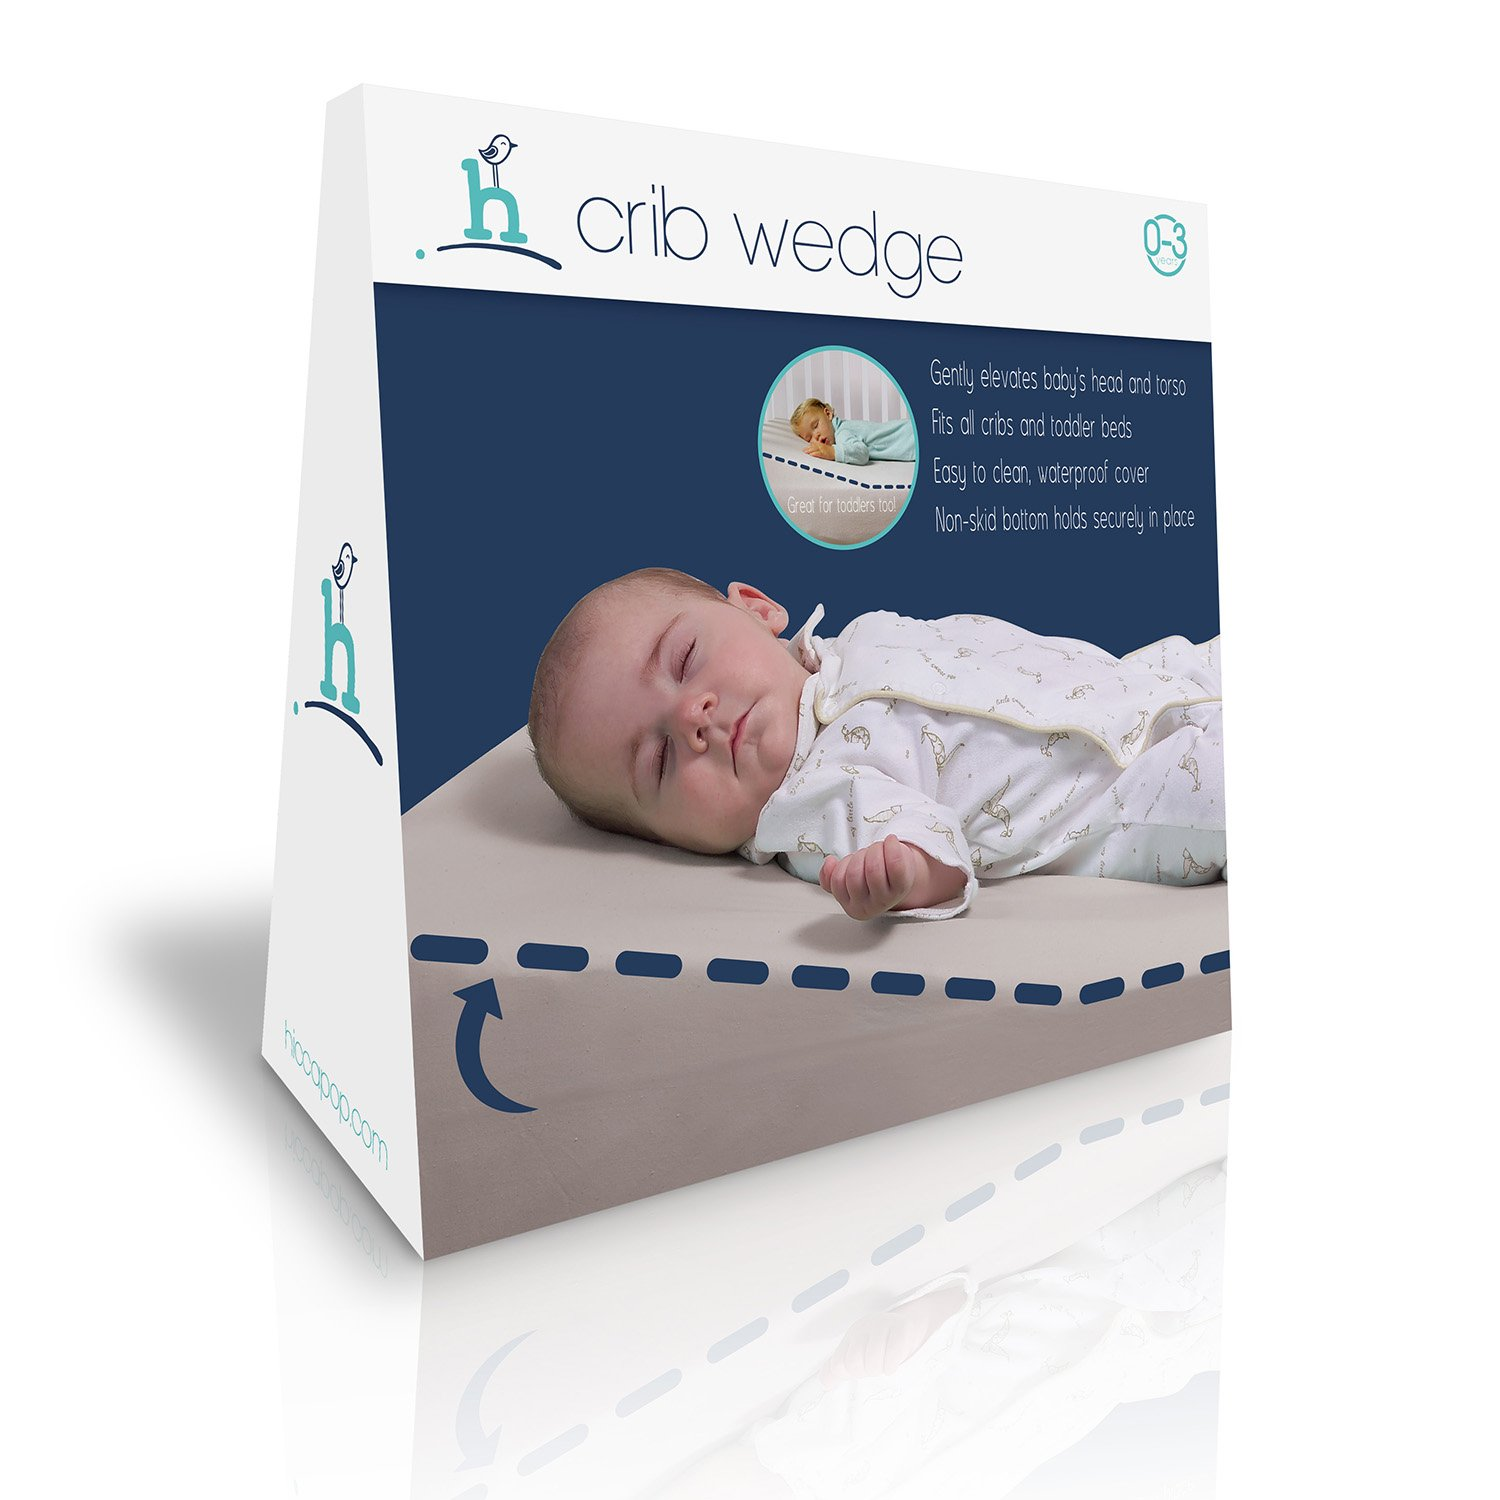 Baby cribs little rock ar - Amazon Com Hiccapop Foldable Safe Lift Universal Crib Wedge For Baby Mattress And Sleep Baby